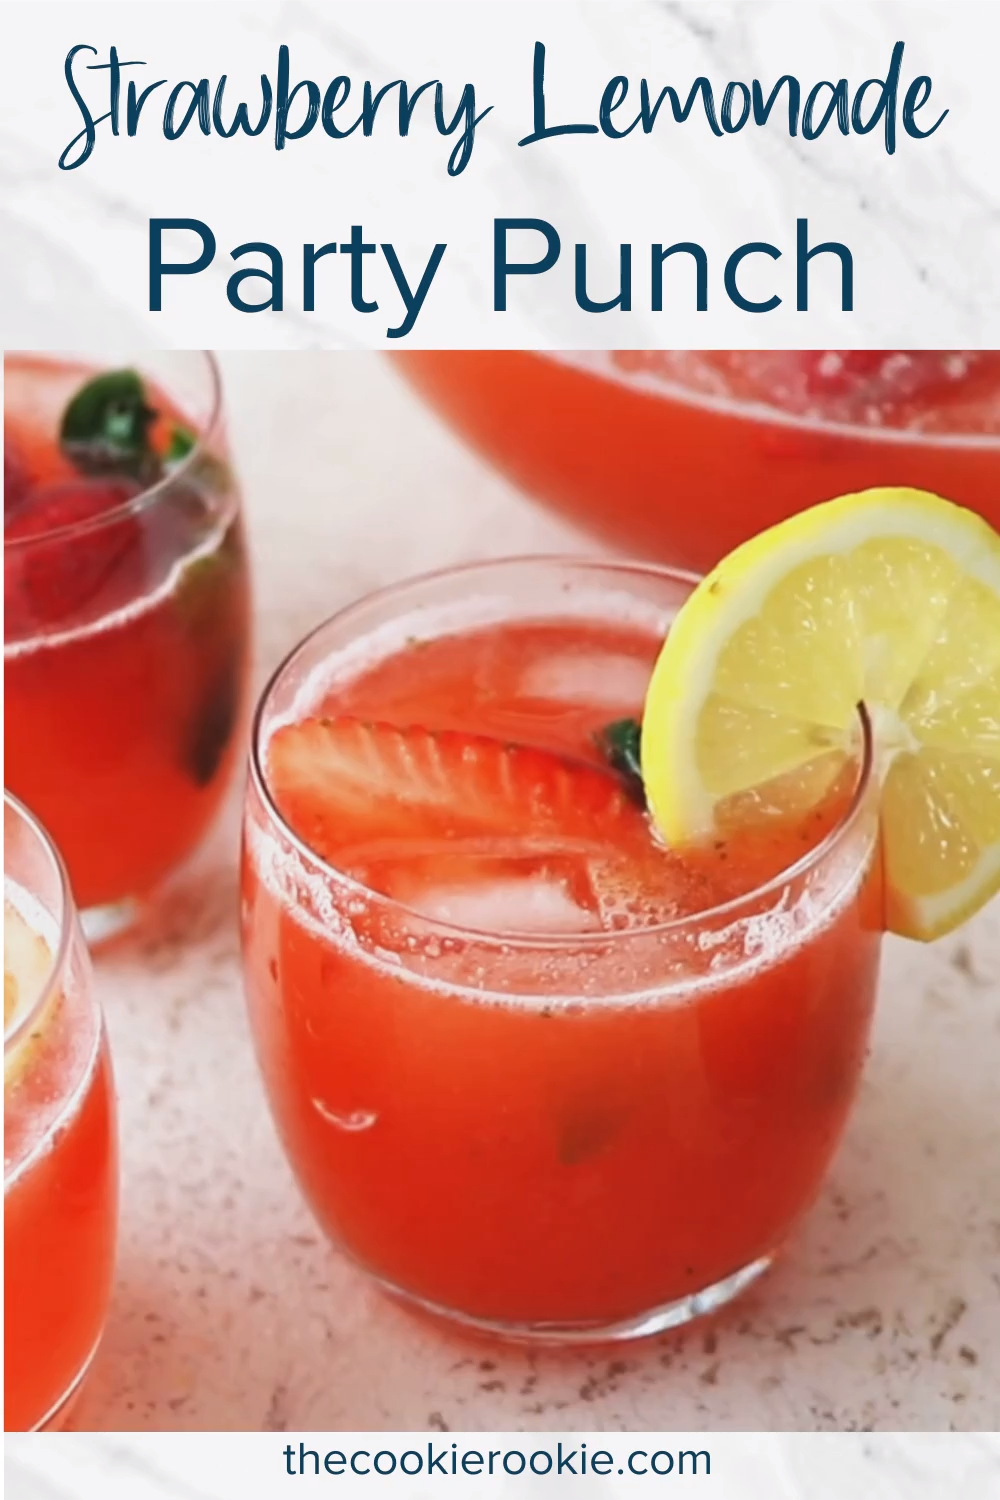 Photo of Strawberry Lemonade Party Punch